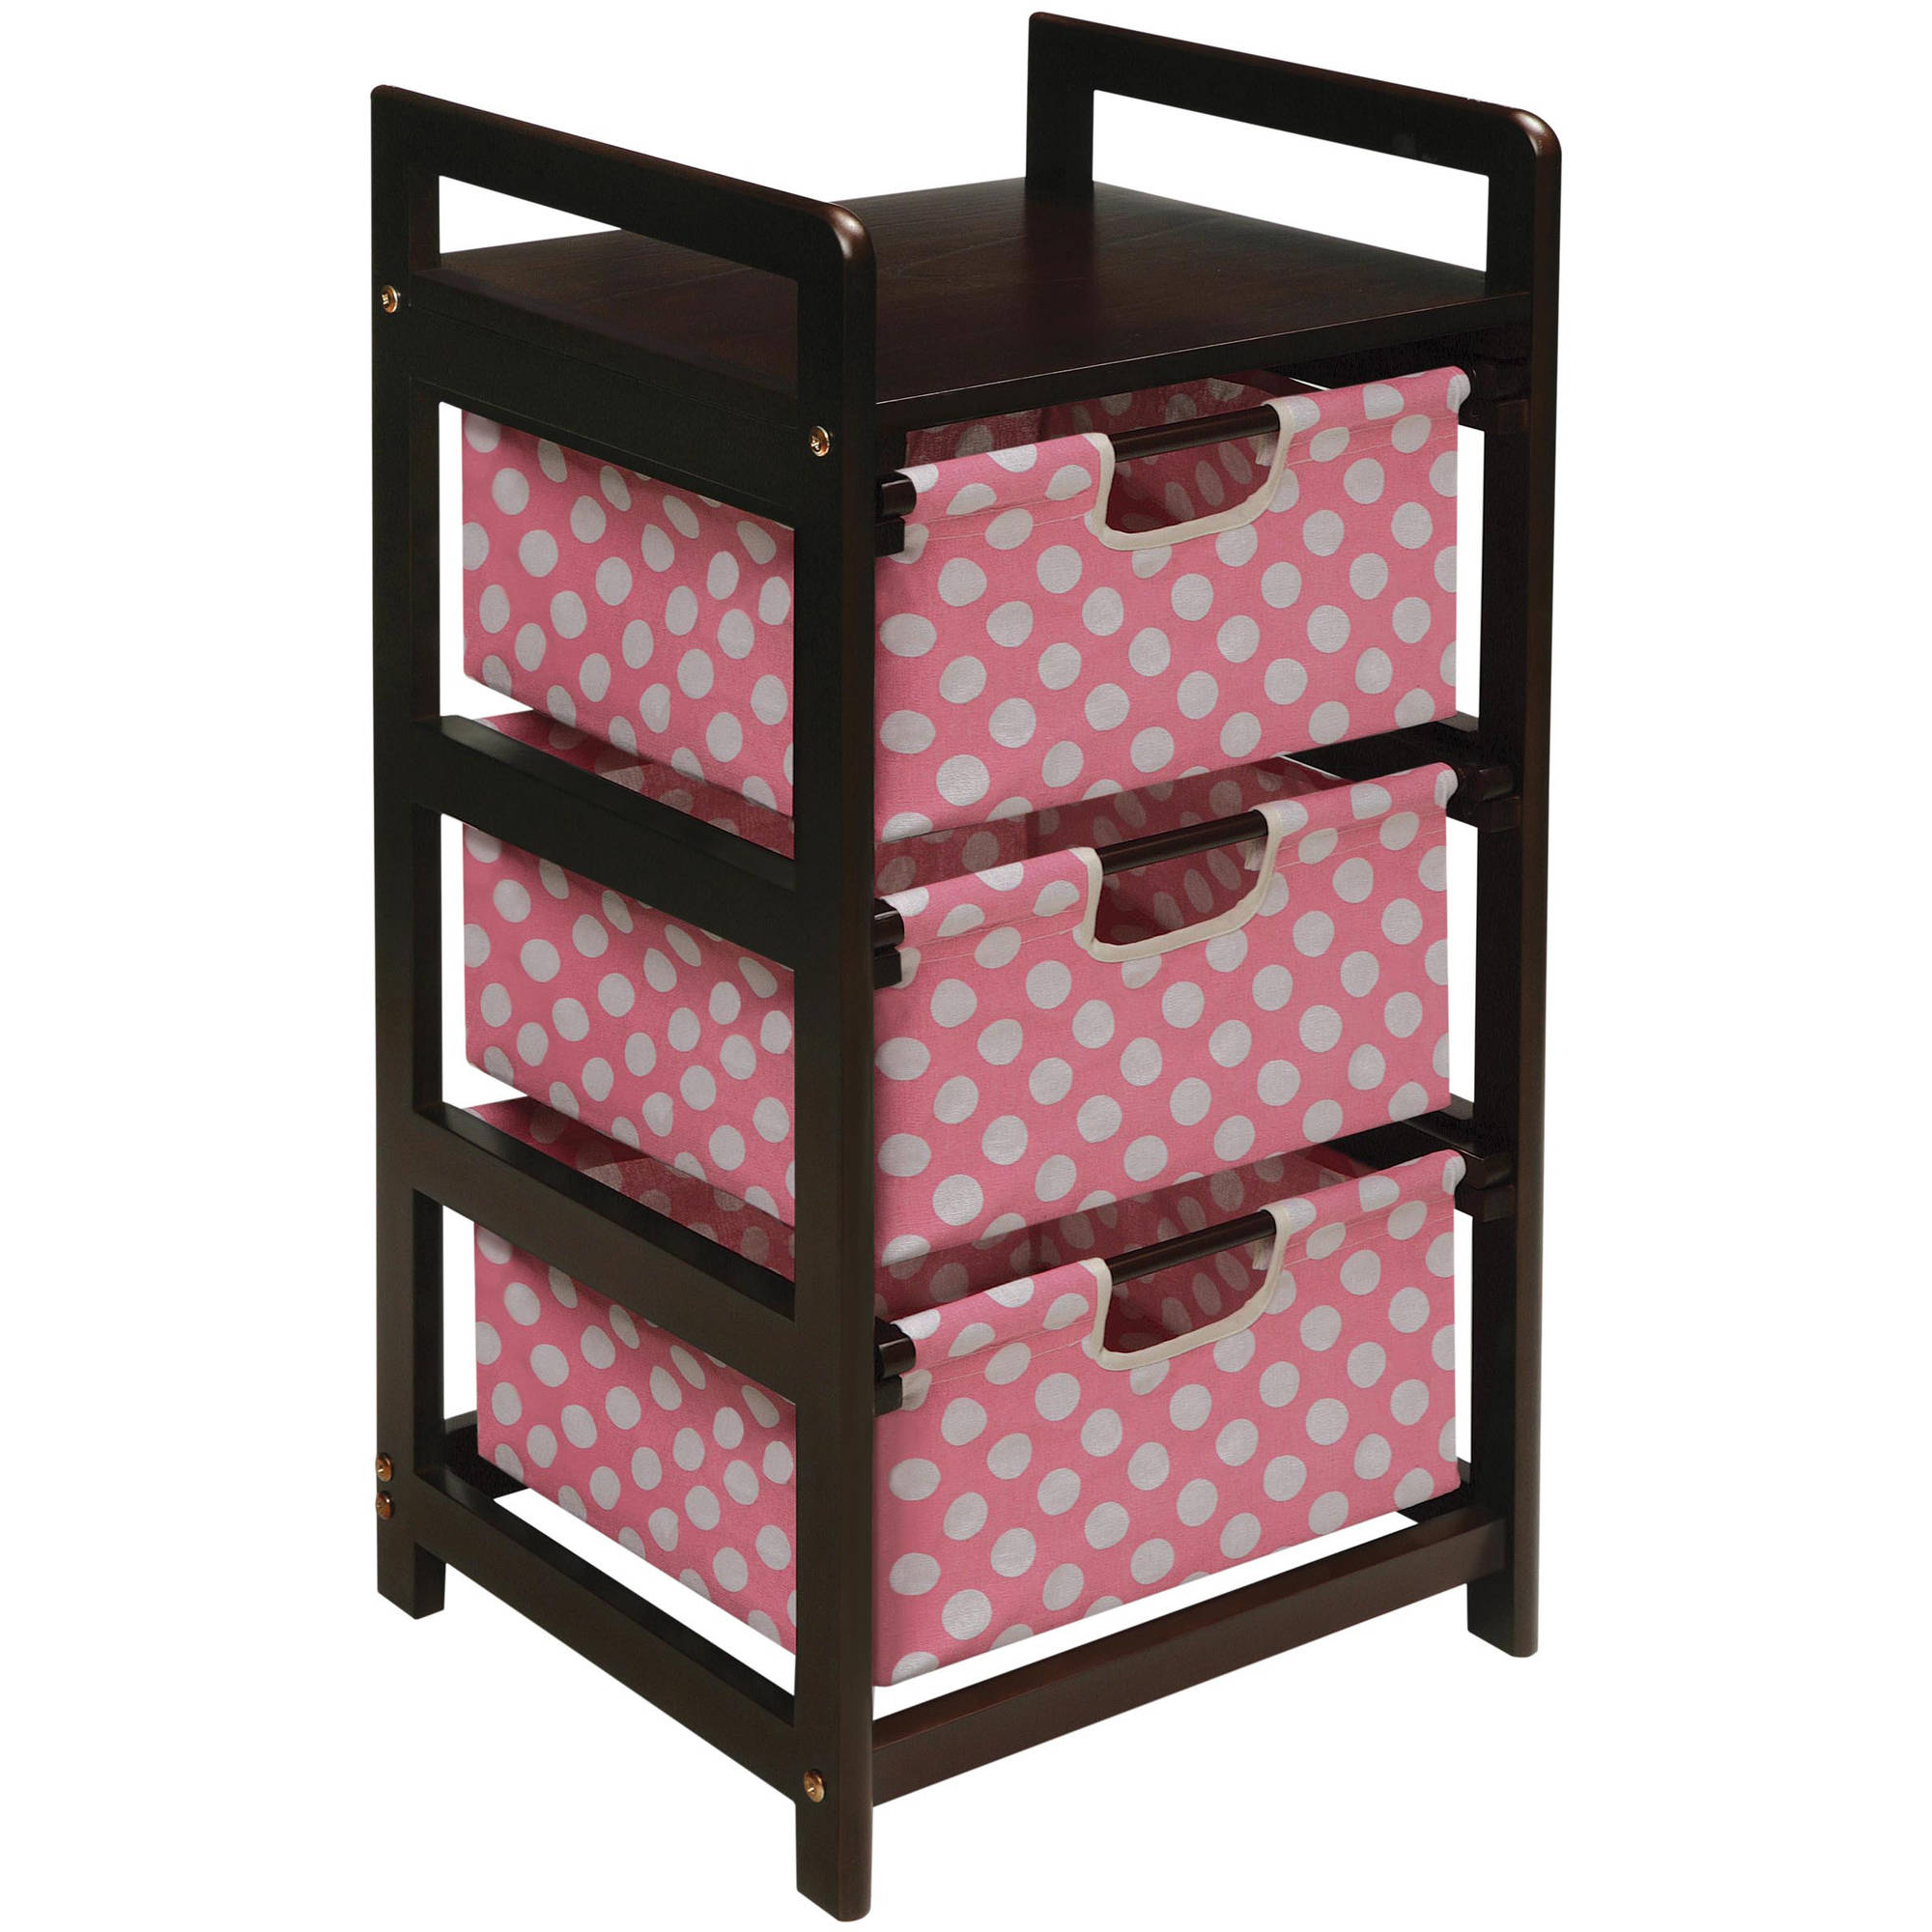 Badger Basket 3-Drawer Hamper Storage Unit, Espresso Finish with Pink Polka Dot Print Drawers by Badger Basket